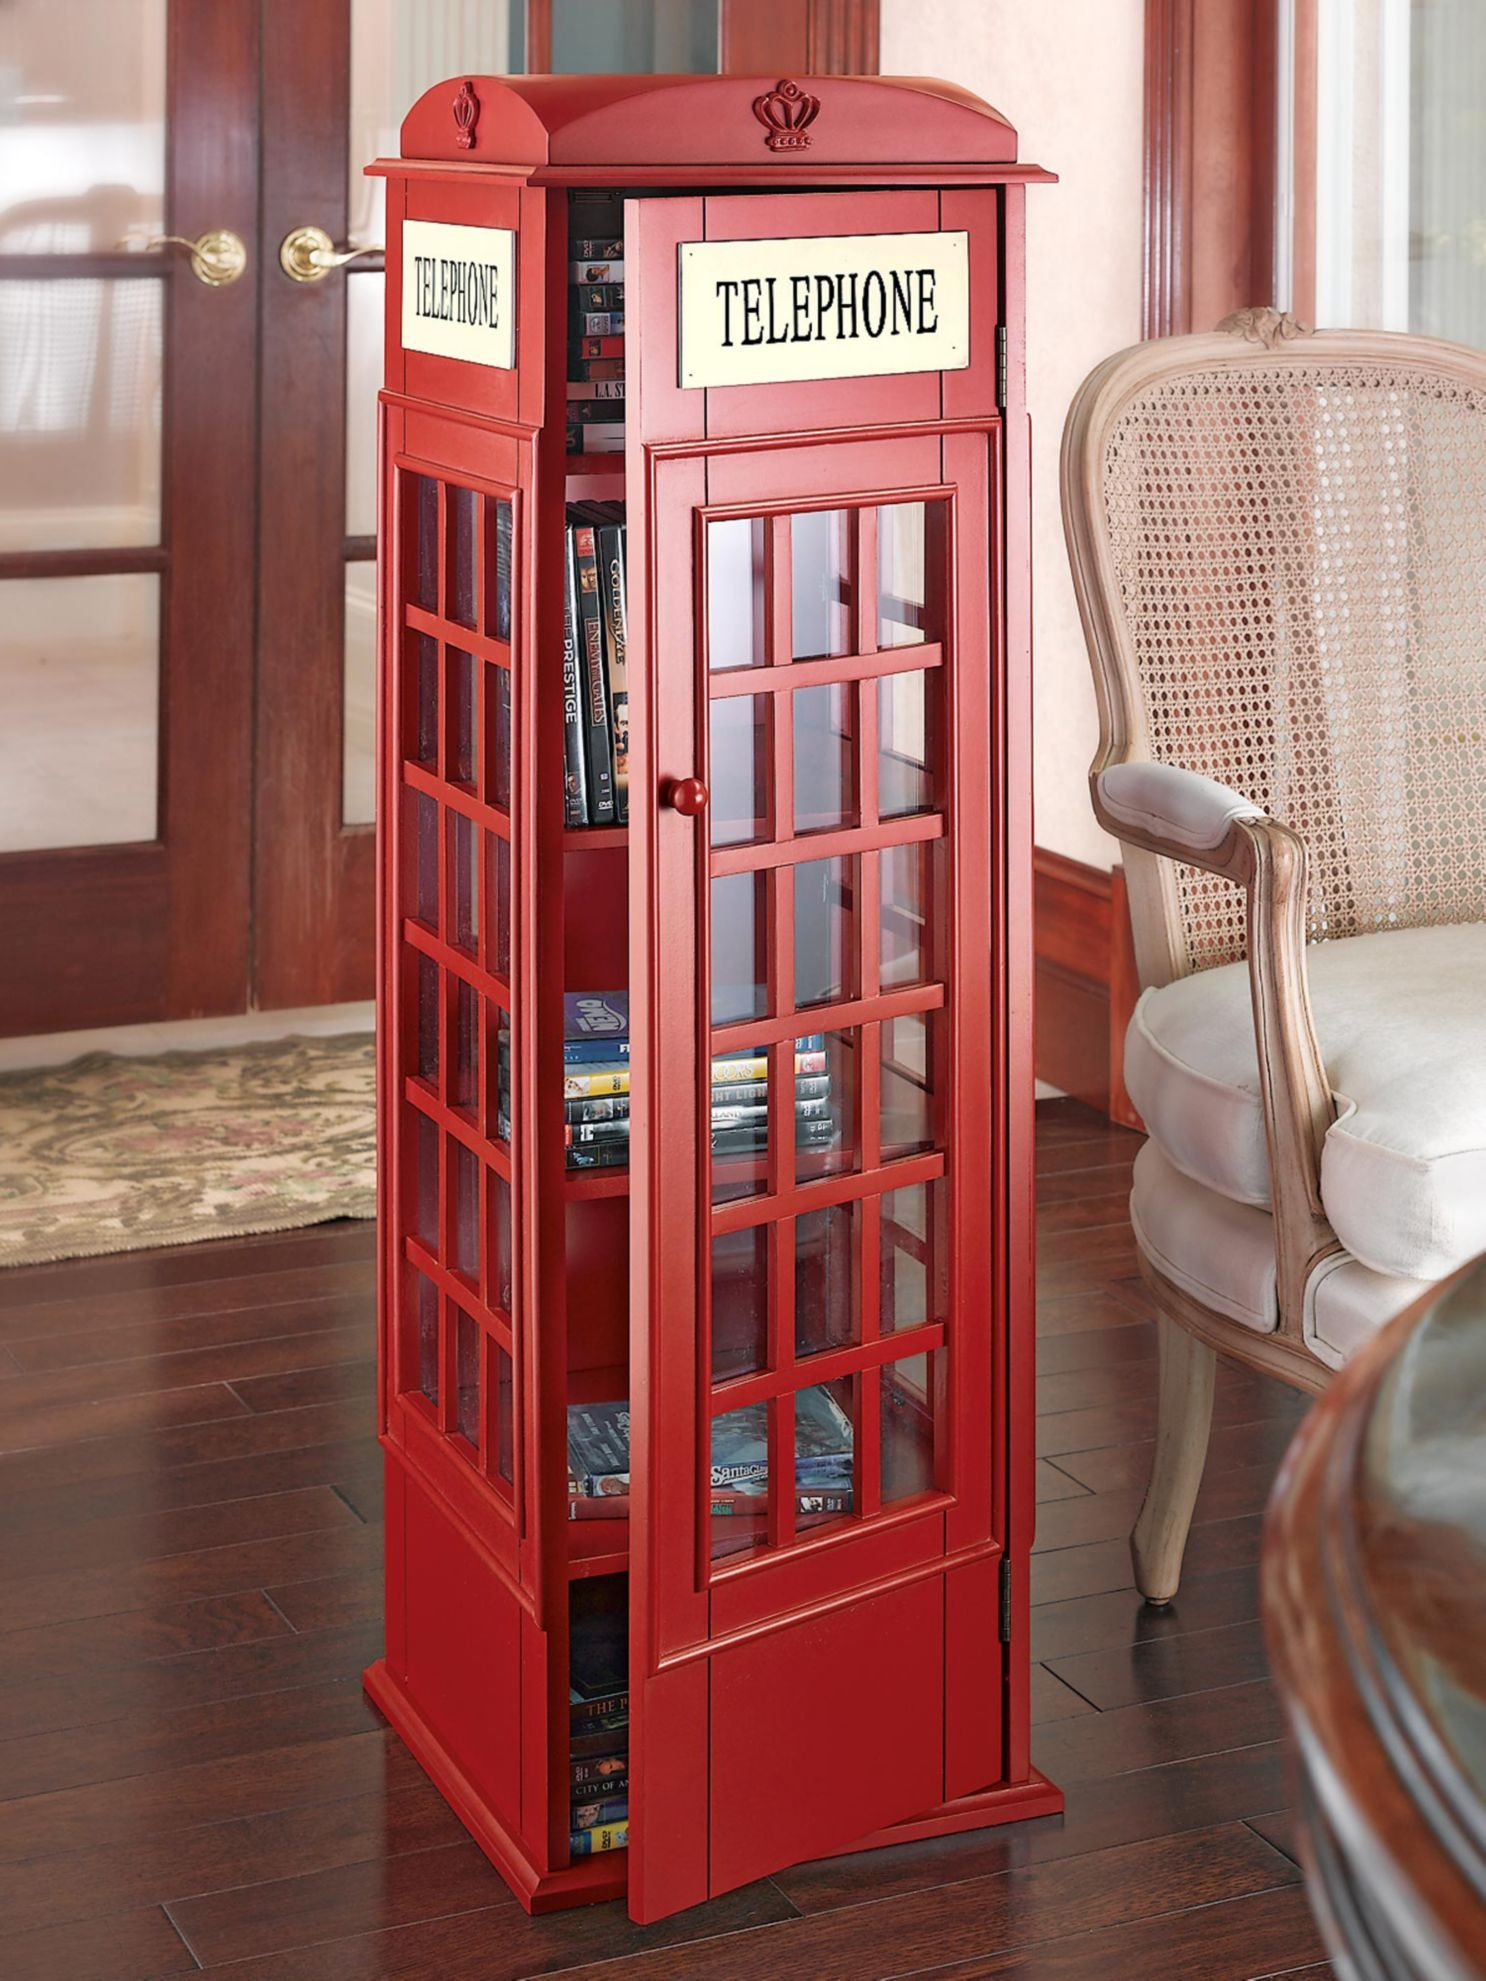 Muebles Cds Space Saving Phone Booth Tower Organizes 290 Cds Or 136 Dvds With